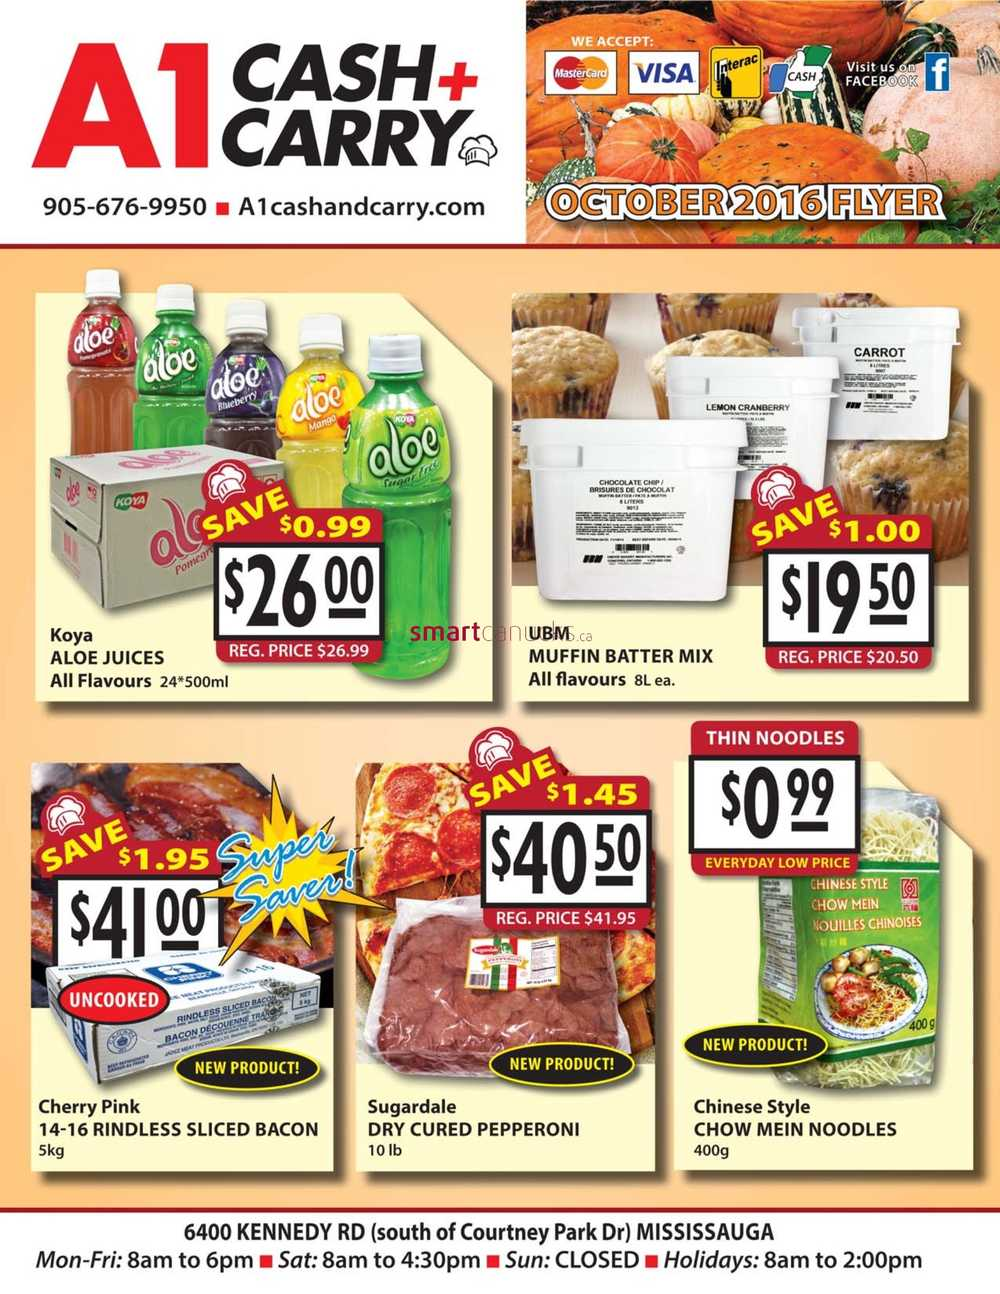 cash and carry We are a leading international wholesale and food service distribution specialist with more than 760 stores in 25 countries we are passionate, creative and consistently customer-oriented.